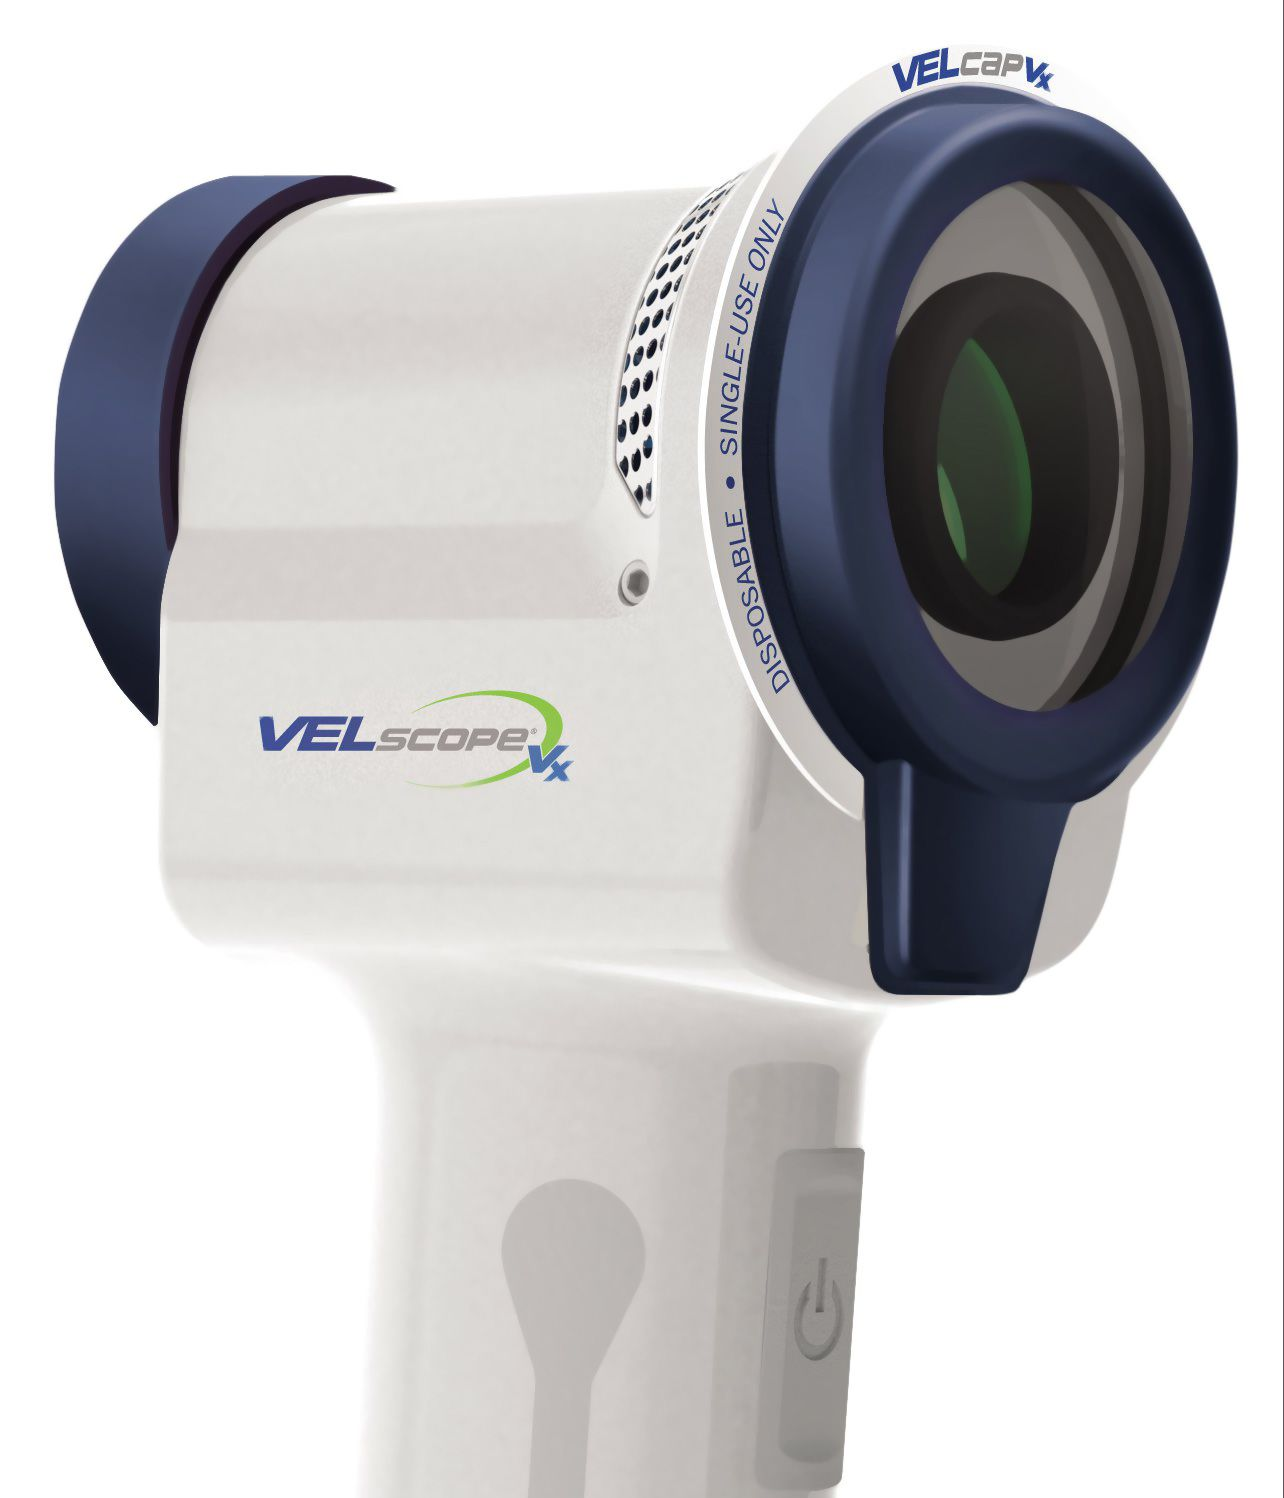 VELscope oral cancer screening technology